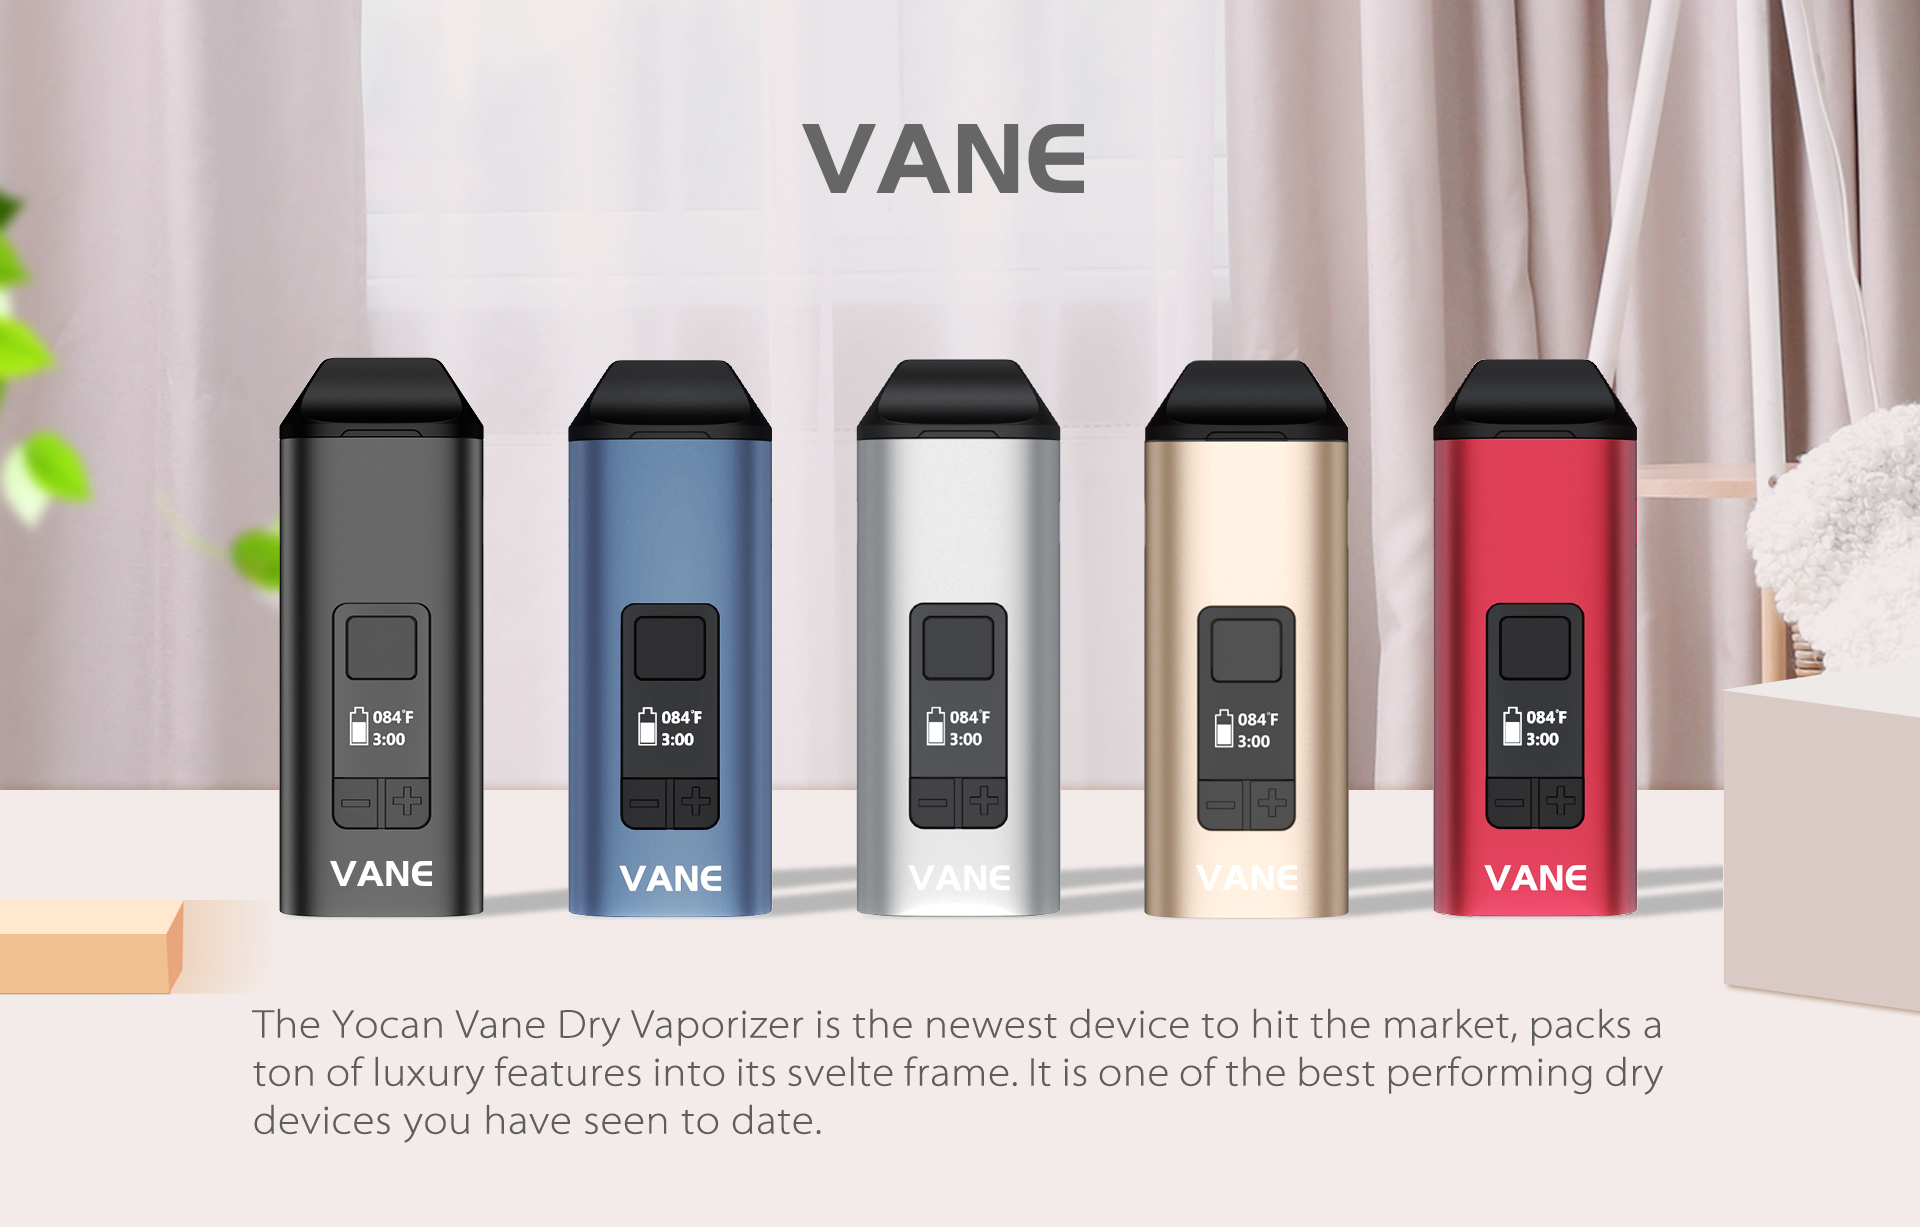 The Yocan Vane Dry Vaporizer is the newest device to hit the market